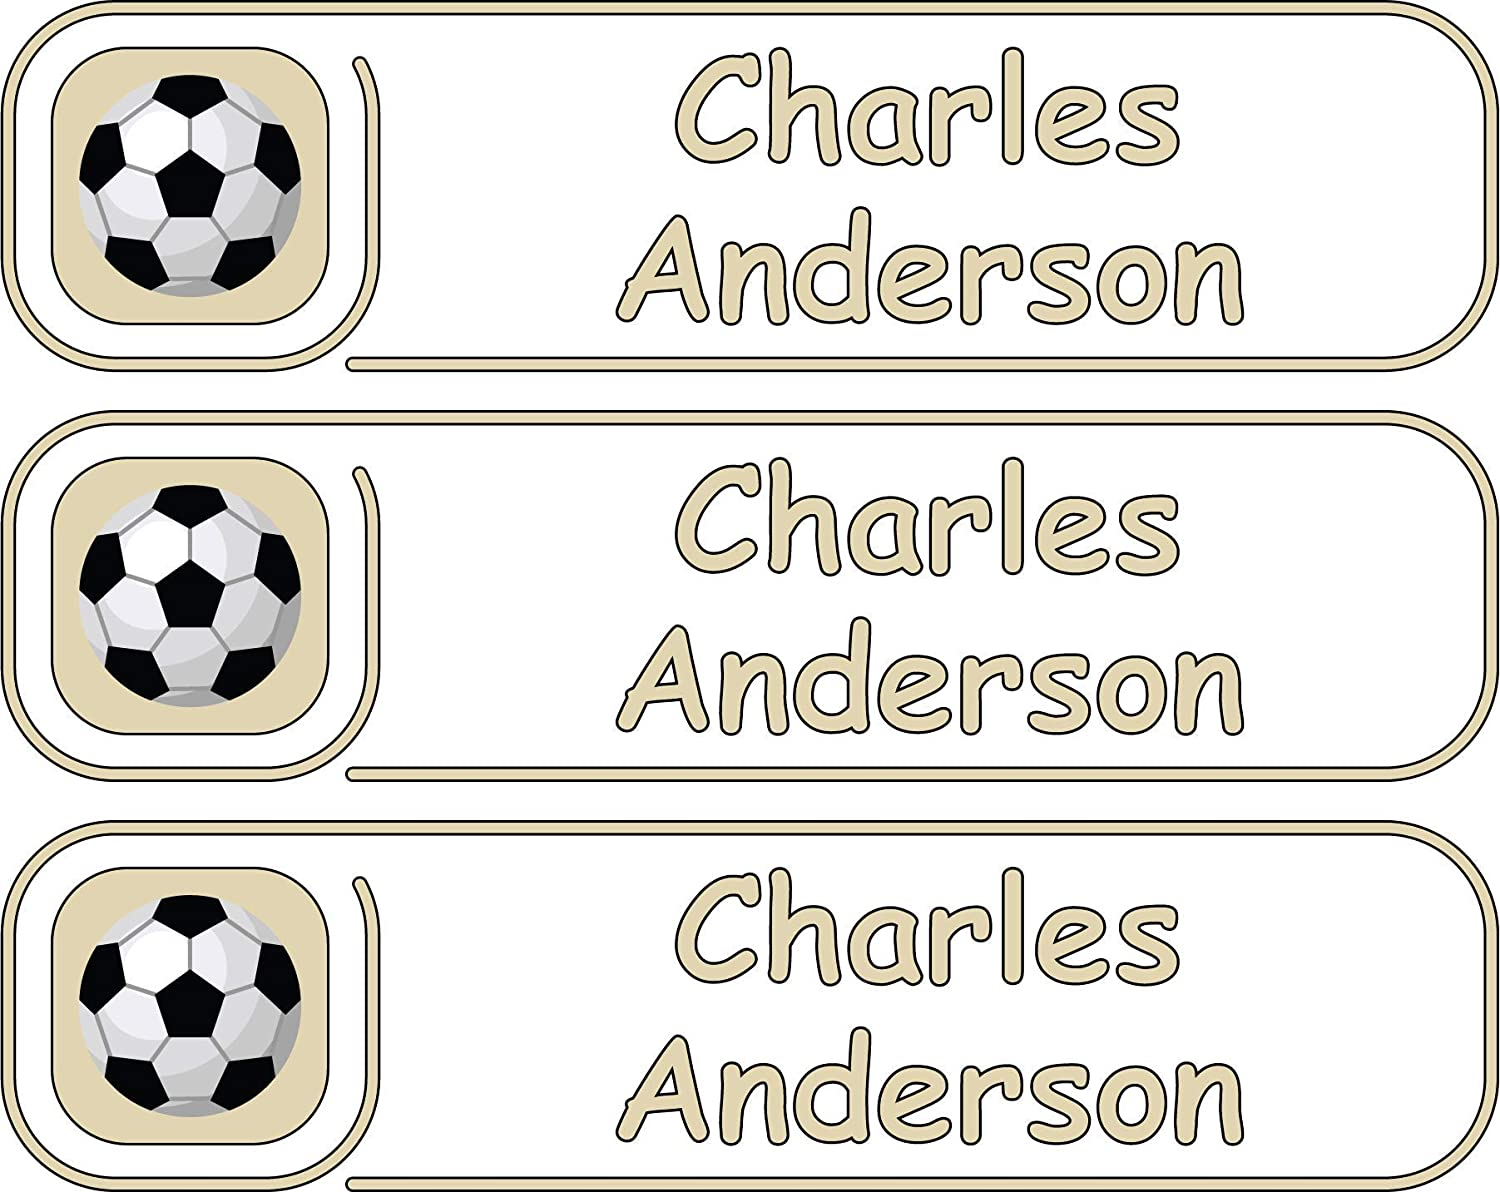 All-purpose Custom Name Labels Multiple Colors Safety and trust Sizes Outlet SALE Wate And